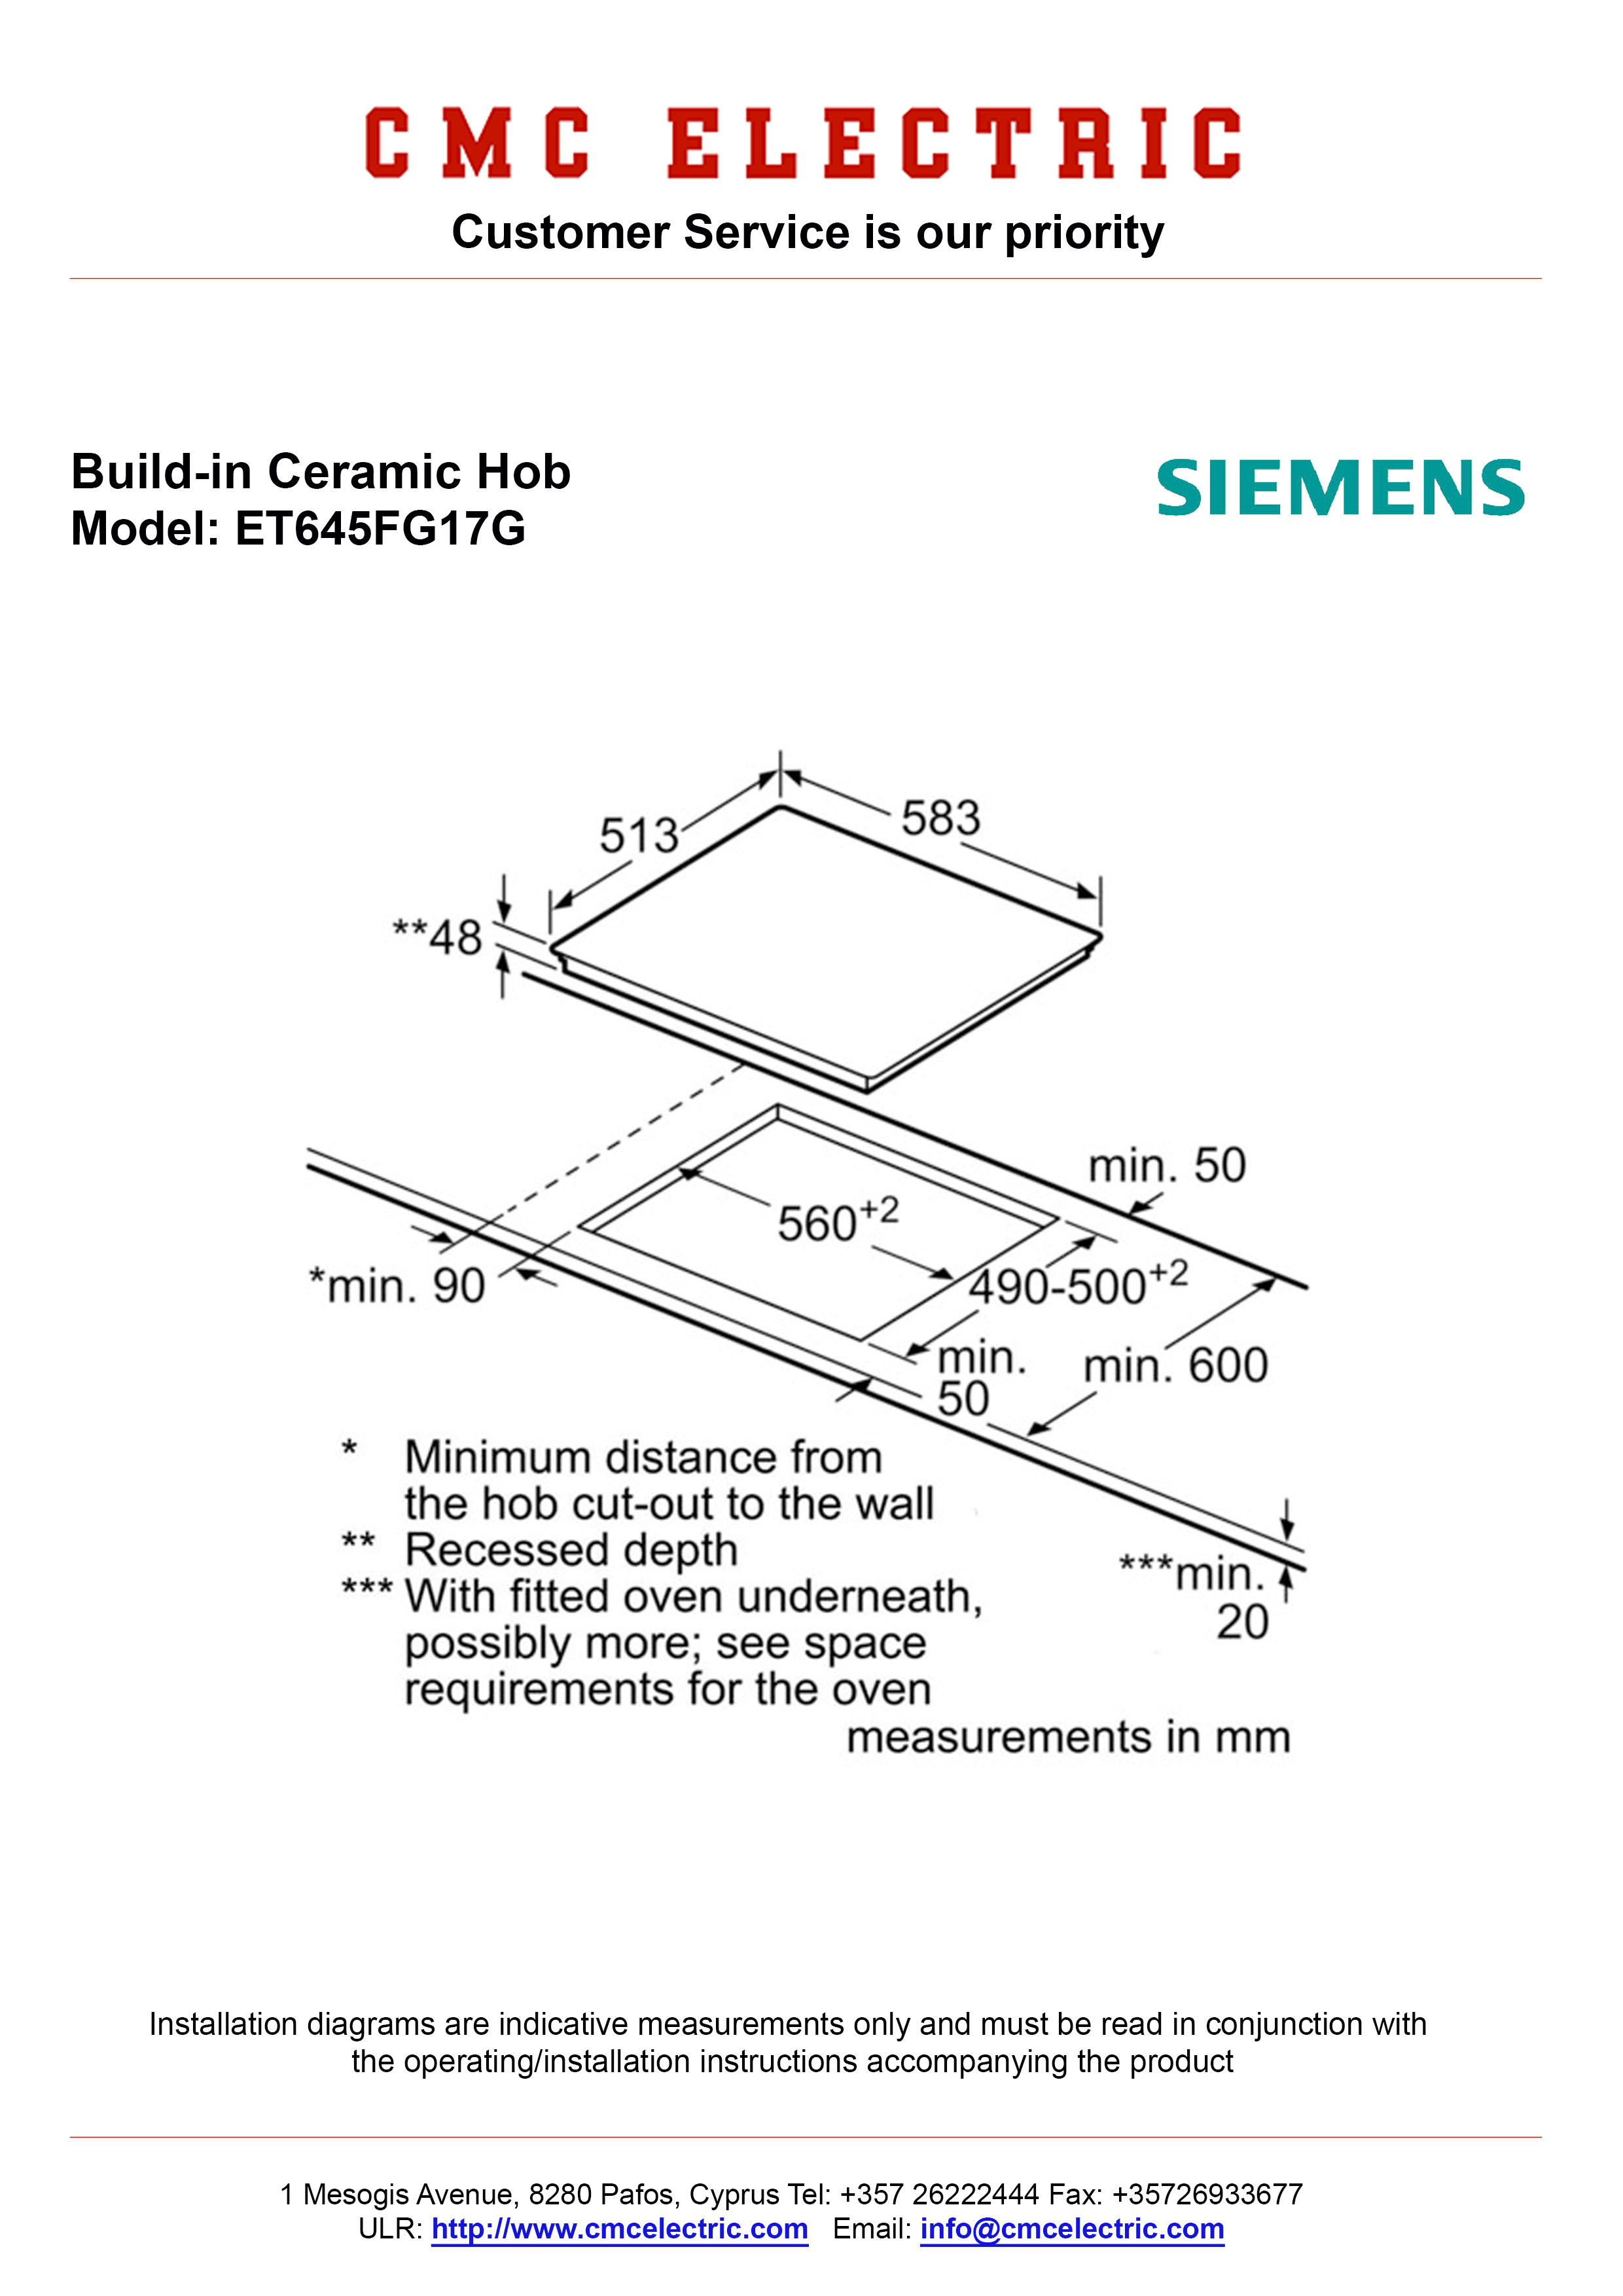 Siemens Et645fg17g Built In Ceramic Hob Cmc Electric Buy Tilt Trim Wiring Diagram Diagramme